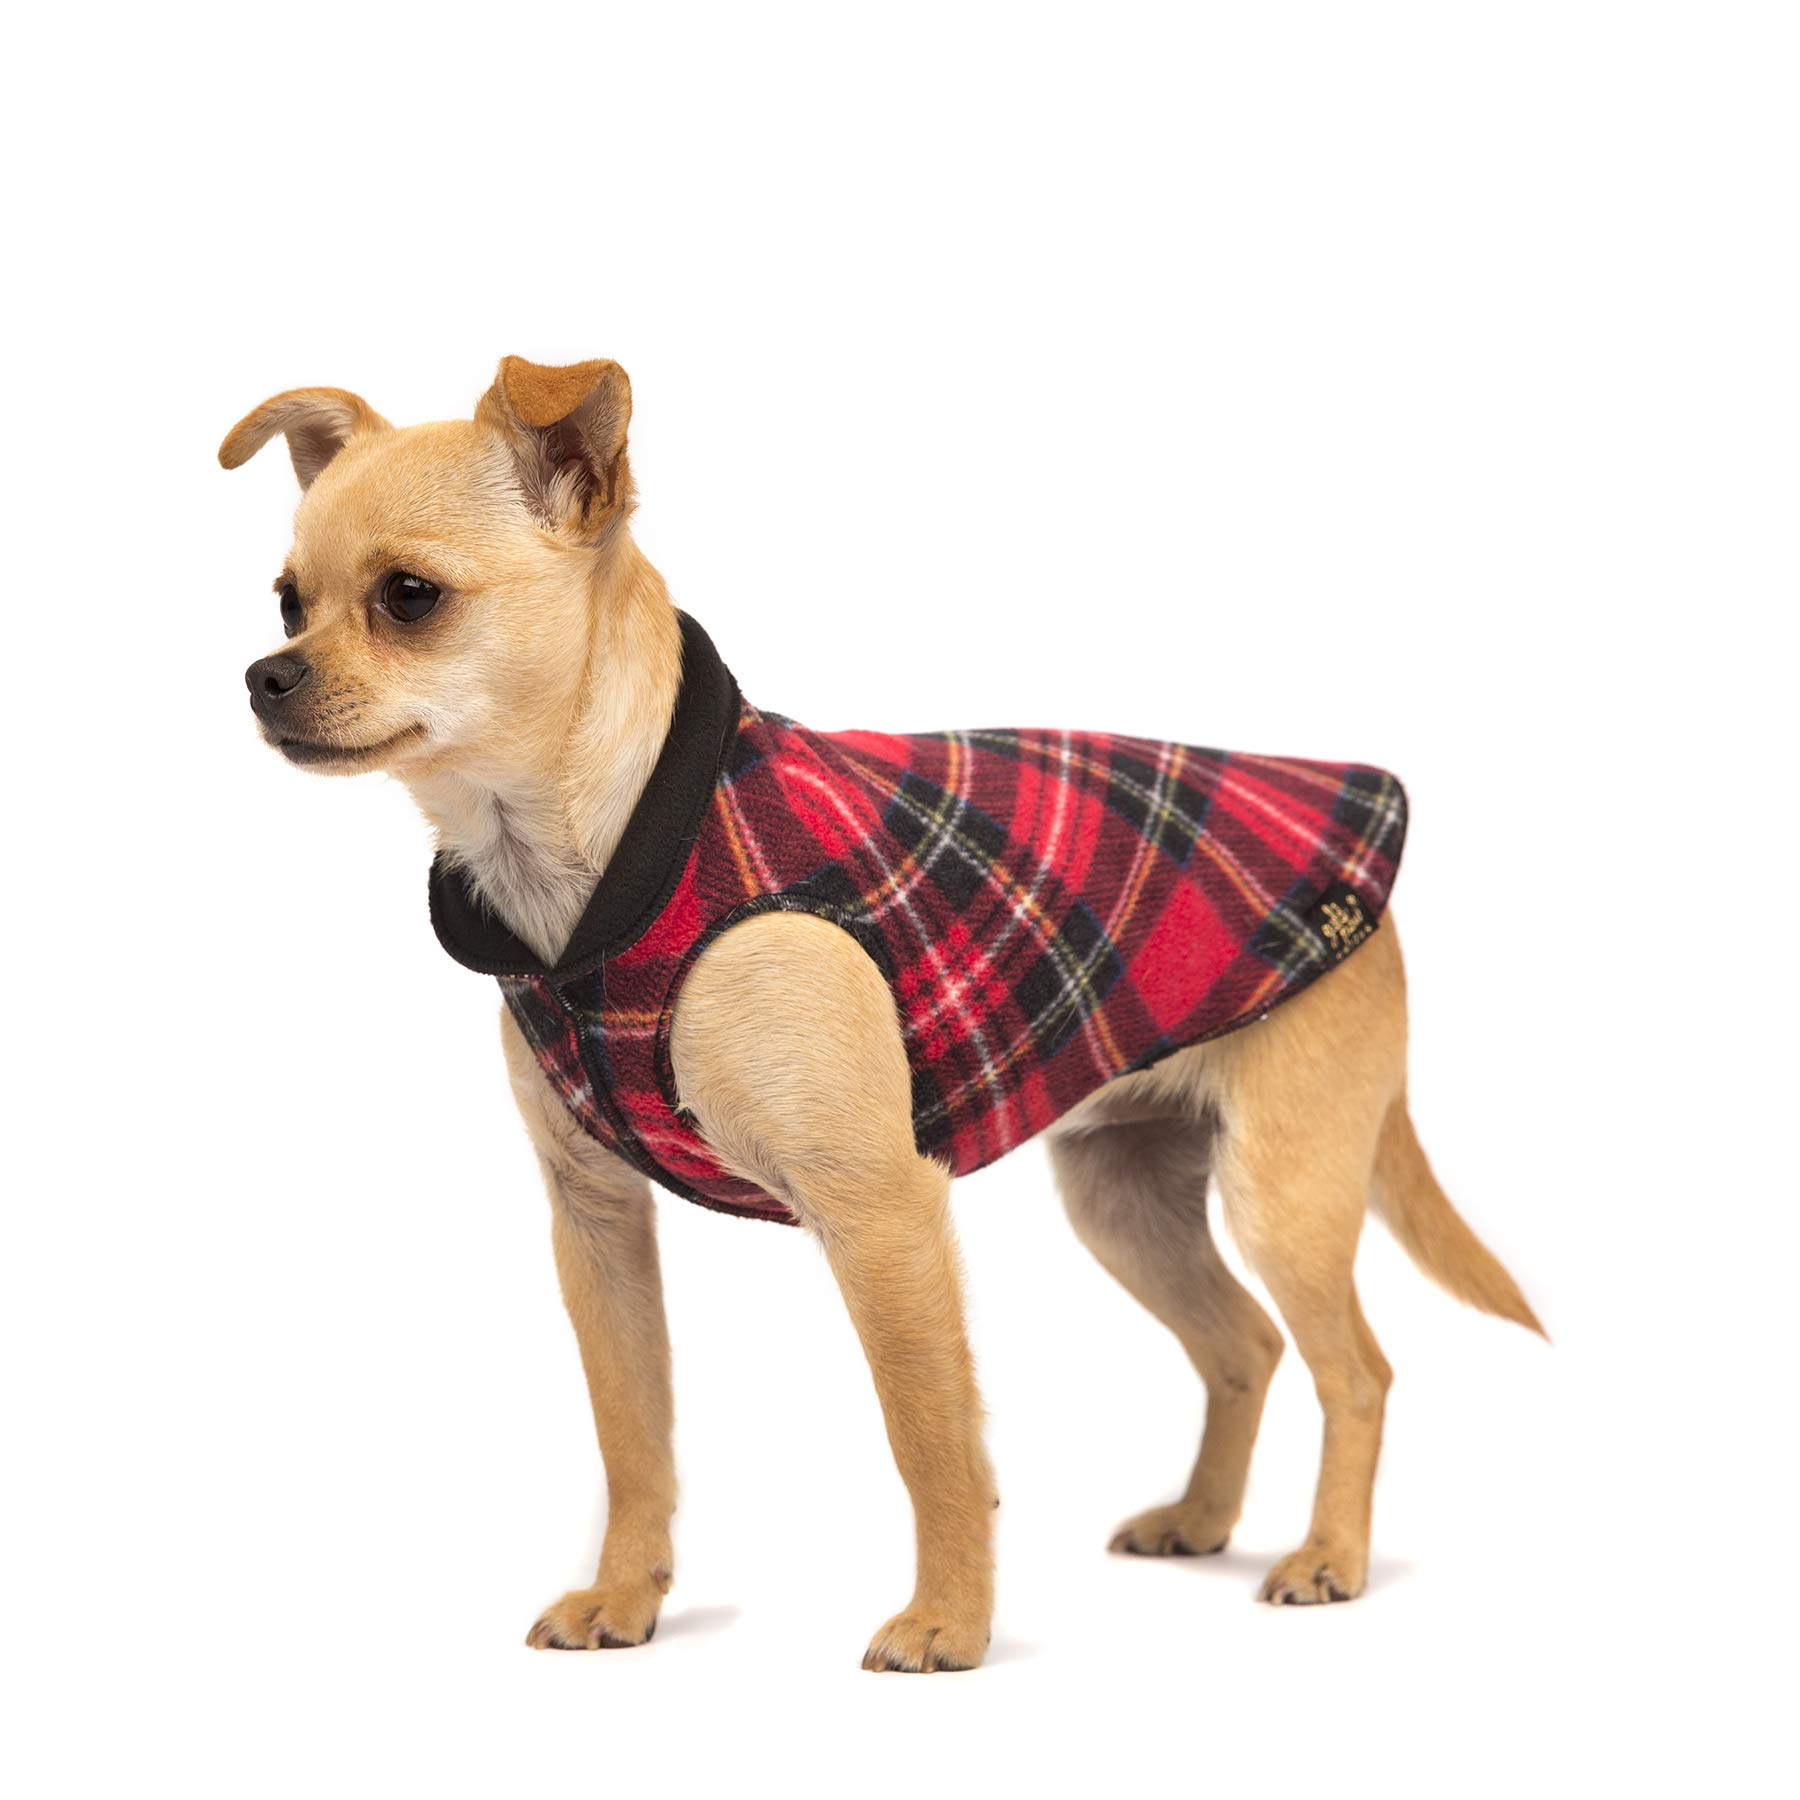 Gold Paw Duluth Double Fleece Dog Coat Pullover - Soft, Warm Dog Clothes, 4-Way Stretch Pet Sweater - Machine Washable, All-Season, Red Tartan/Black, Size 14 by Gold Paw